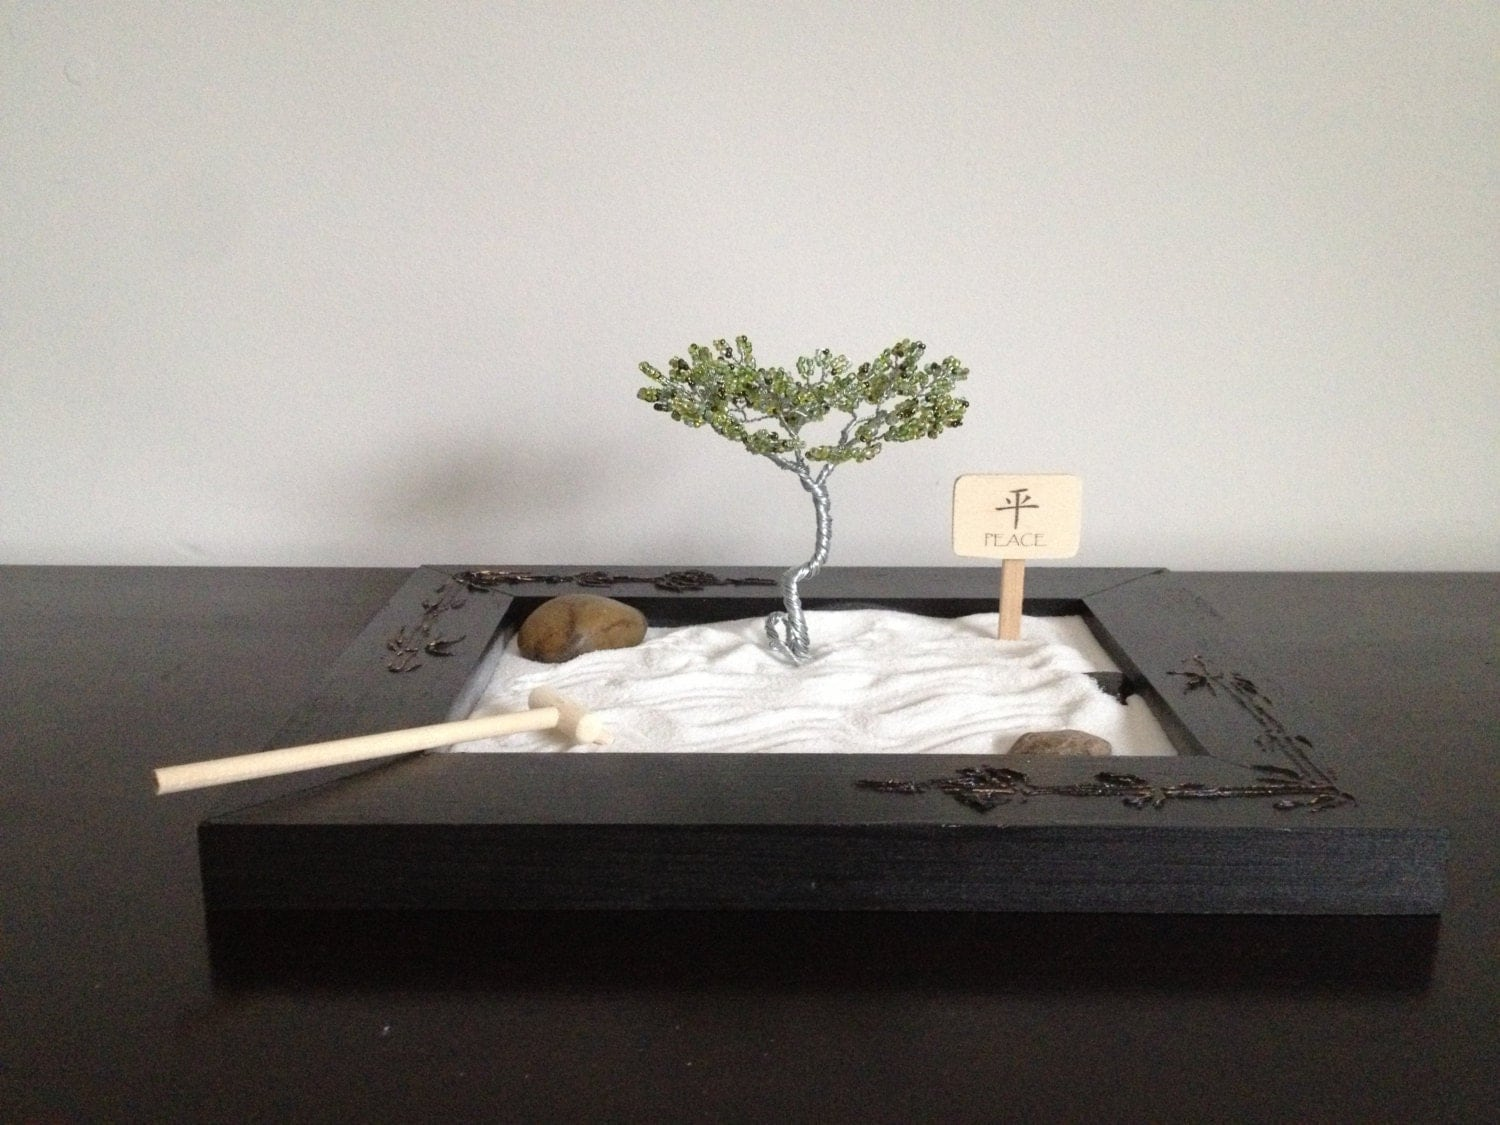 Office Zen Garden Zen Garden Kit Plus Zen Garden Tree